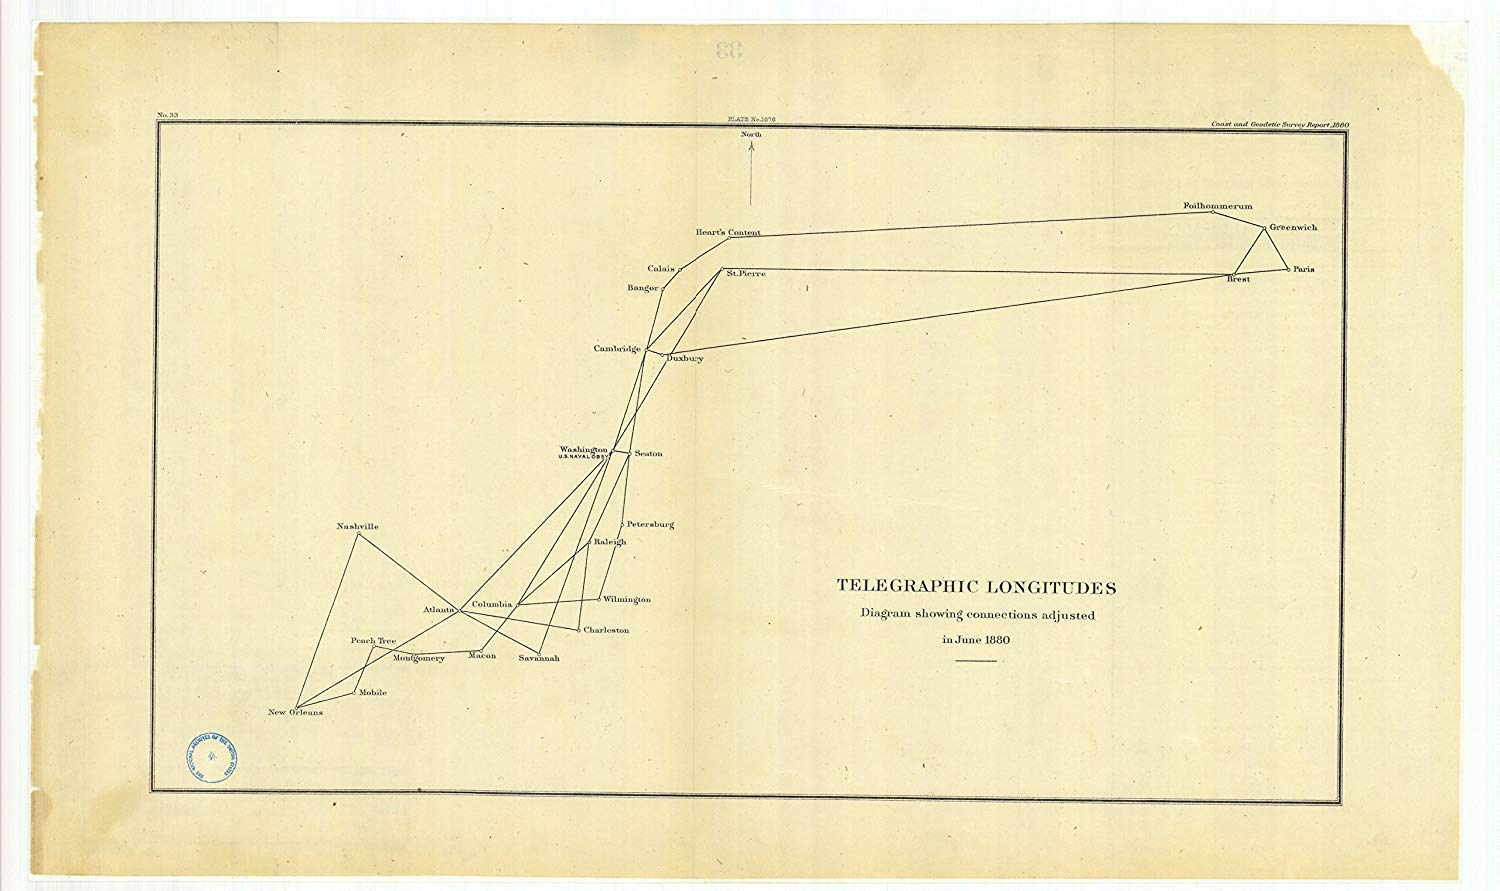 8 x 12 inch 1880 Maine Old Nautical map Drawing Chart Telegraphic Longitudes Diagram Showing Connections Adjusted in June 1880 from US Coast & Geodetic Survey x6336